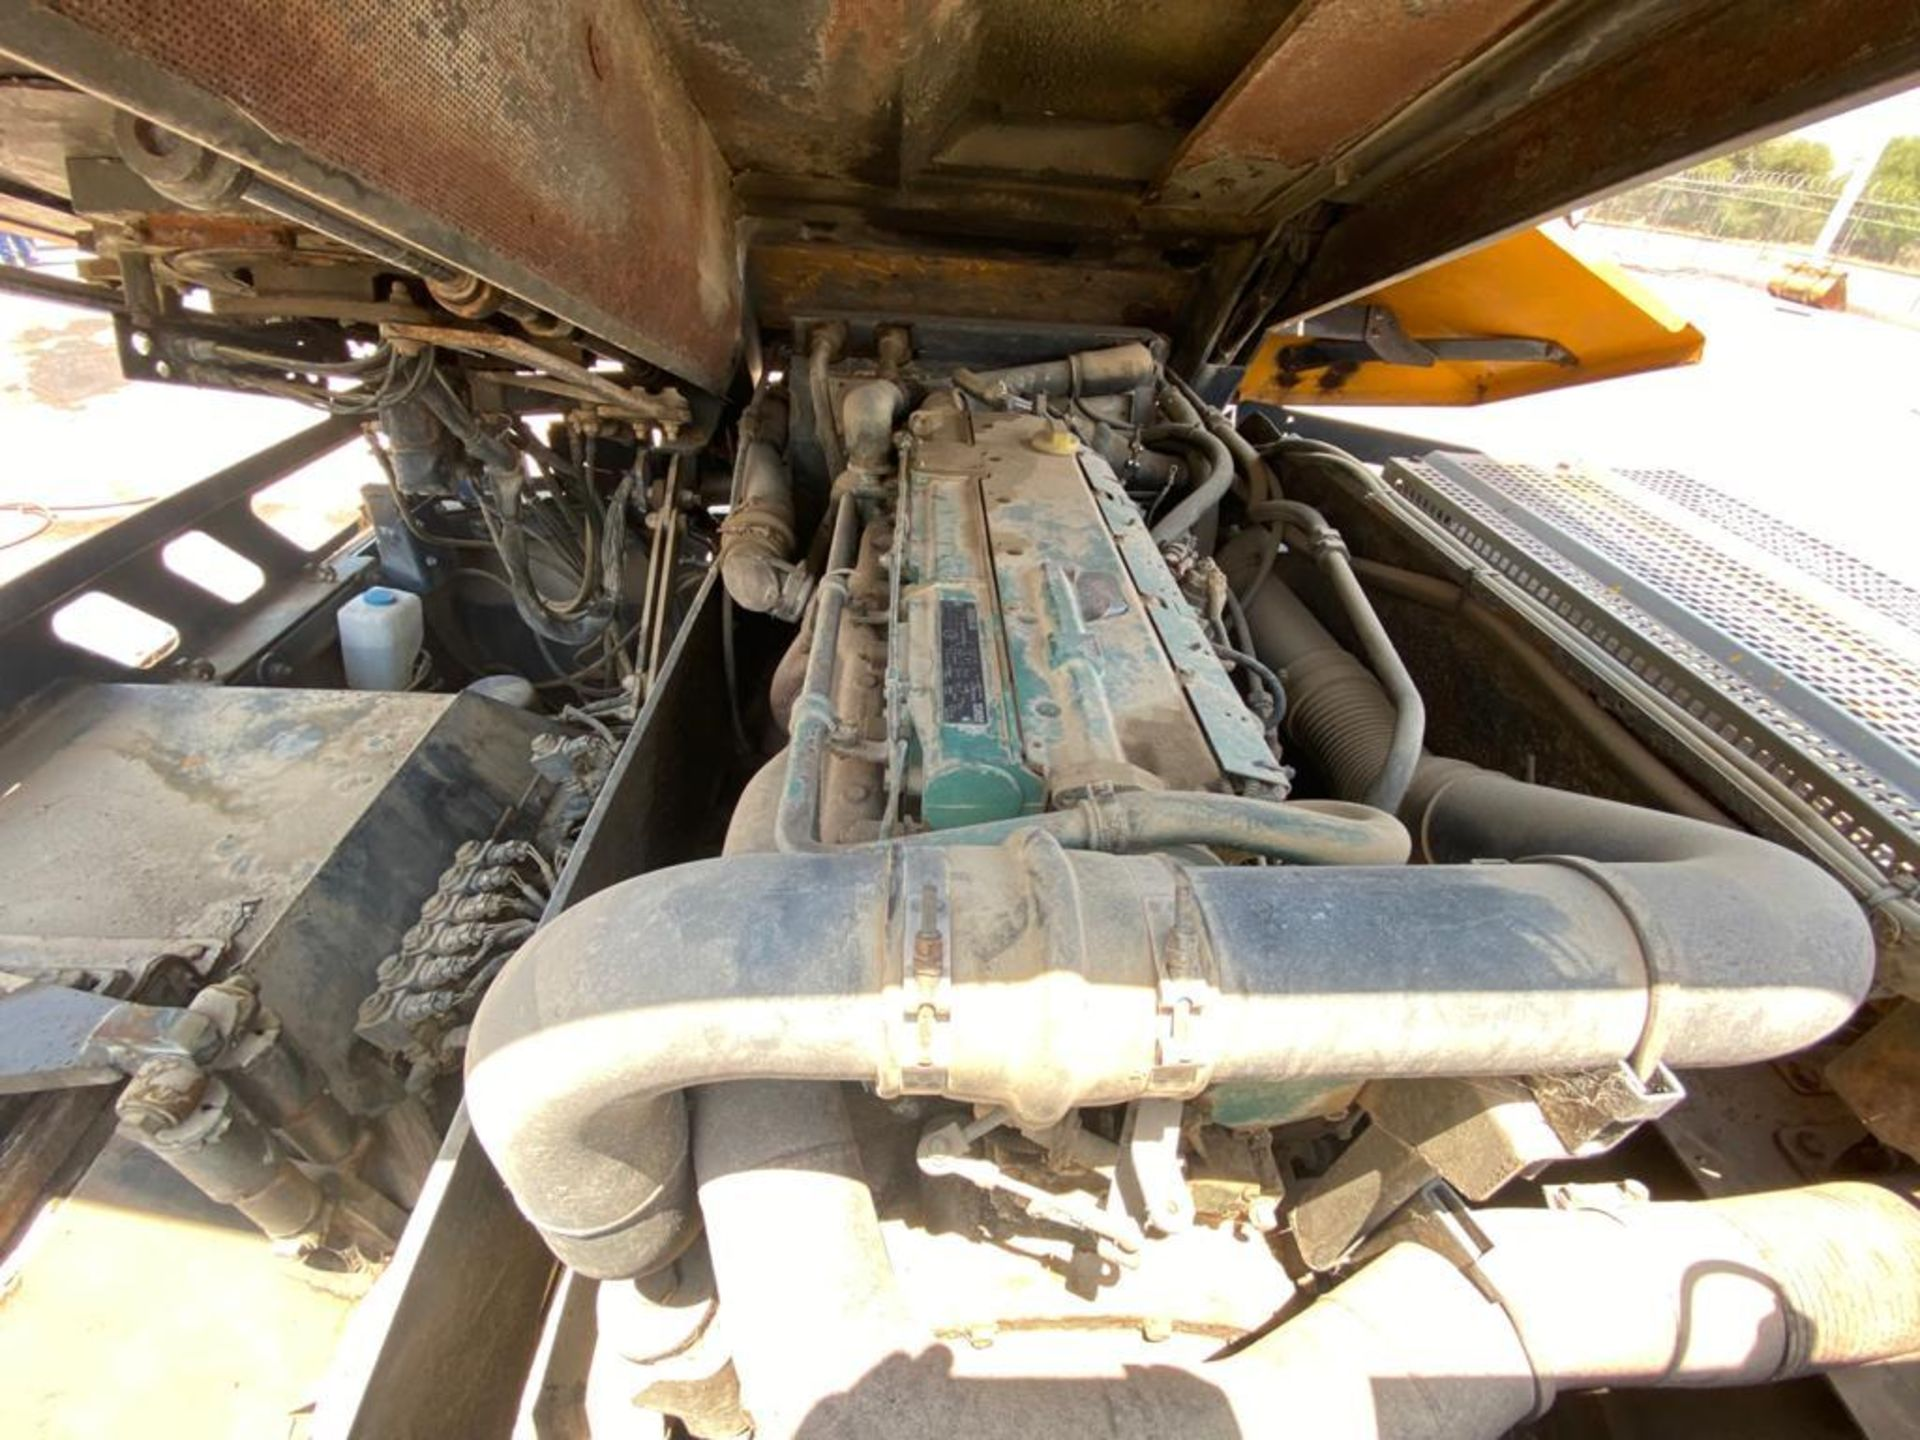 Terberg Capacity 2002 Terminal Tractor, automatic transmission, with Volvo motor - Image 41 of 57